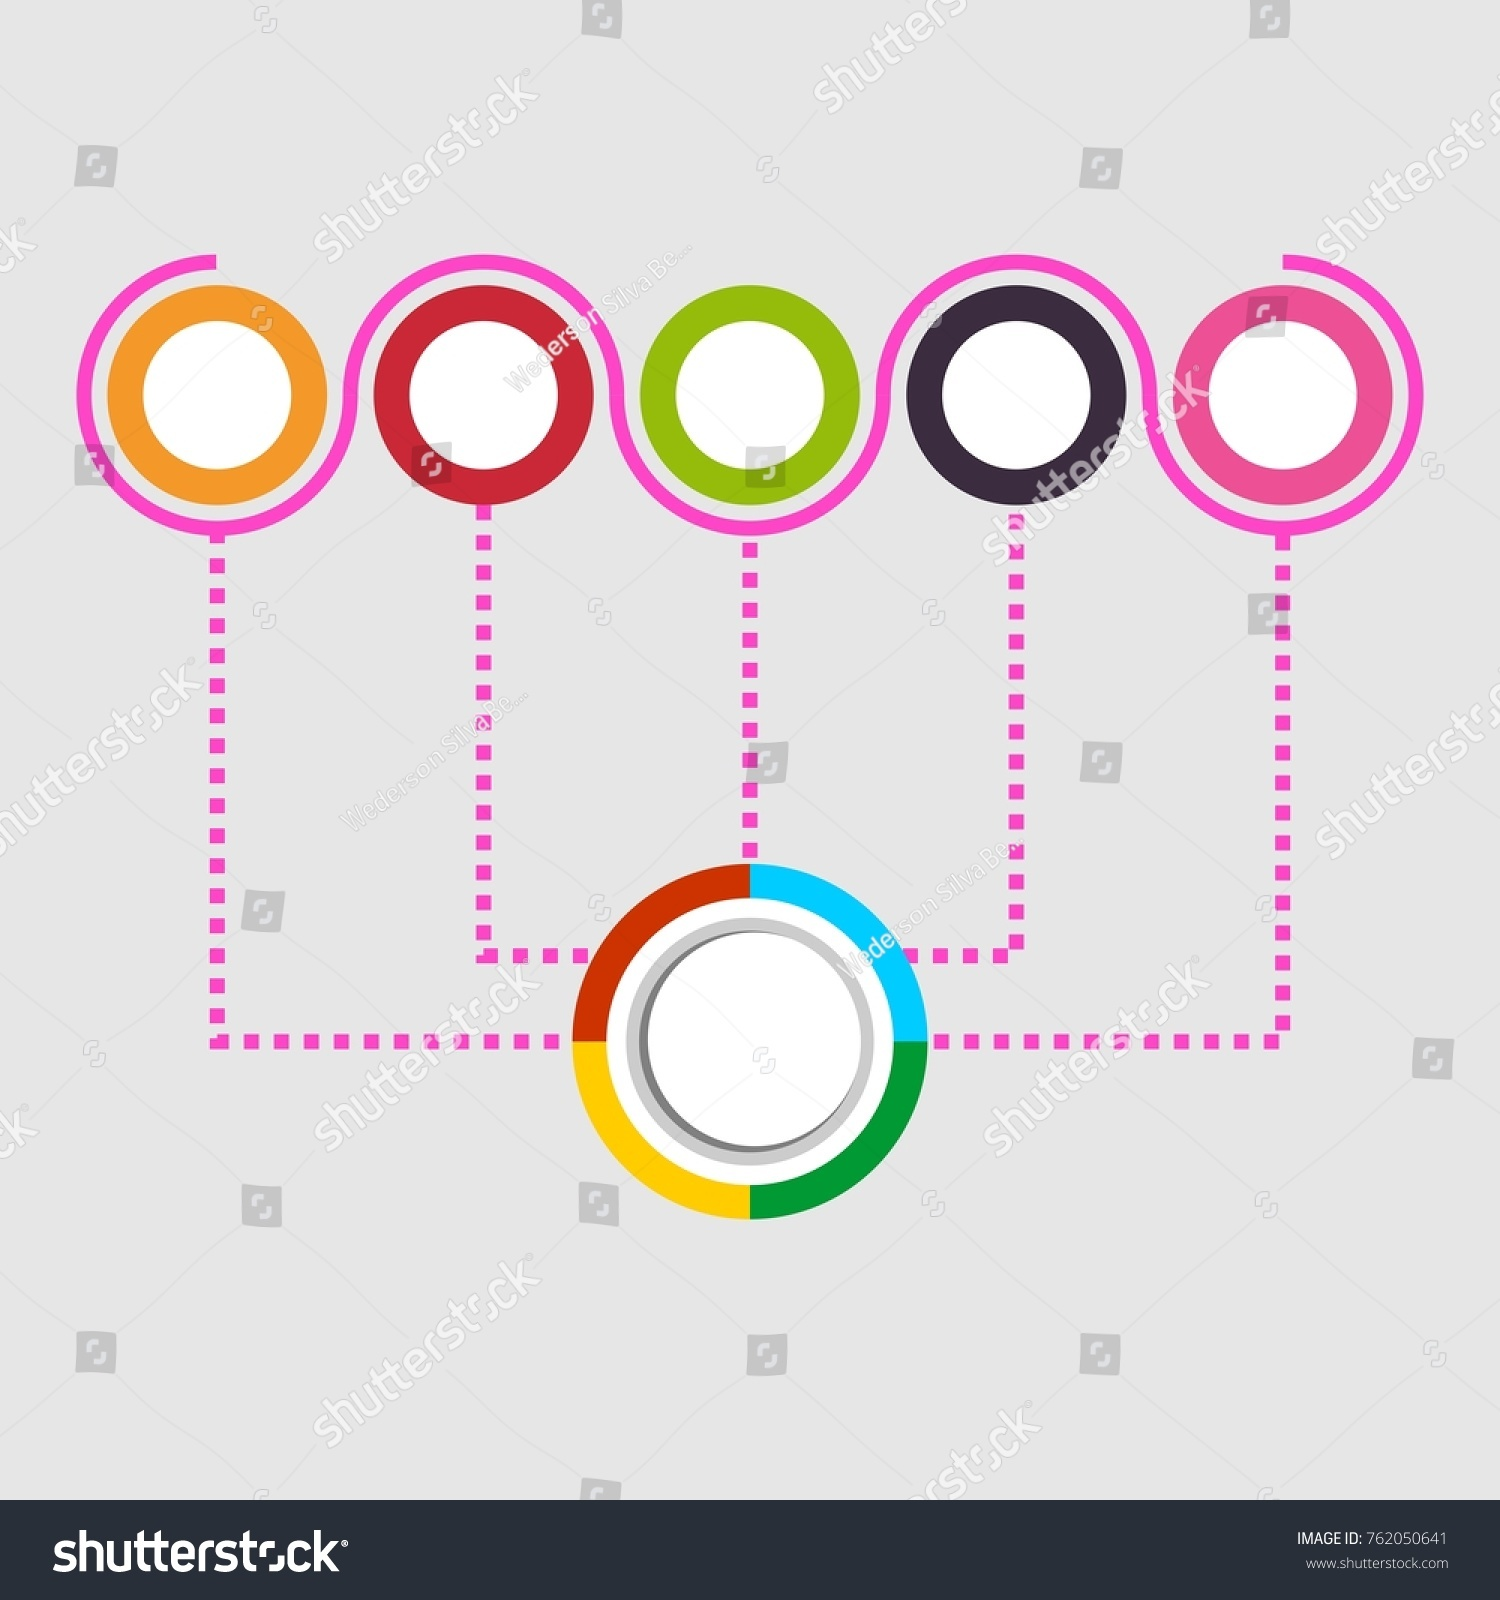 hight resolution of digital diagram style diagram and flow chart of technology concept presentation vector illustration